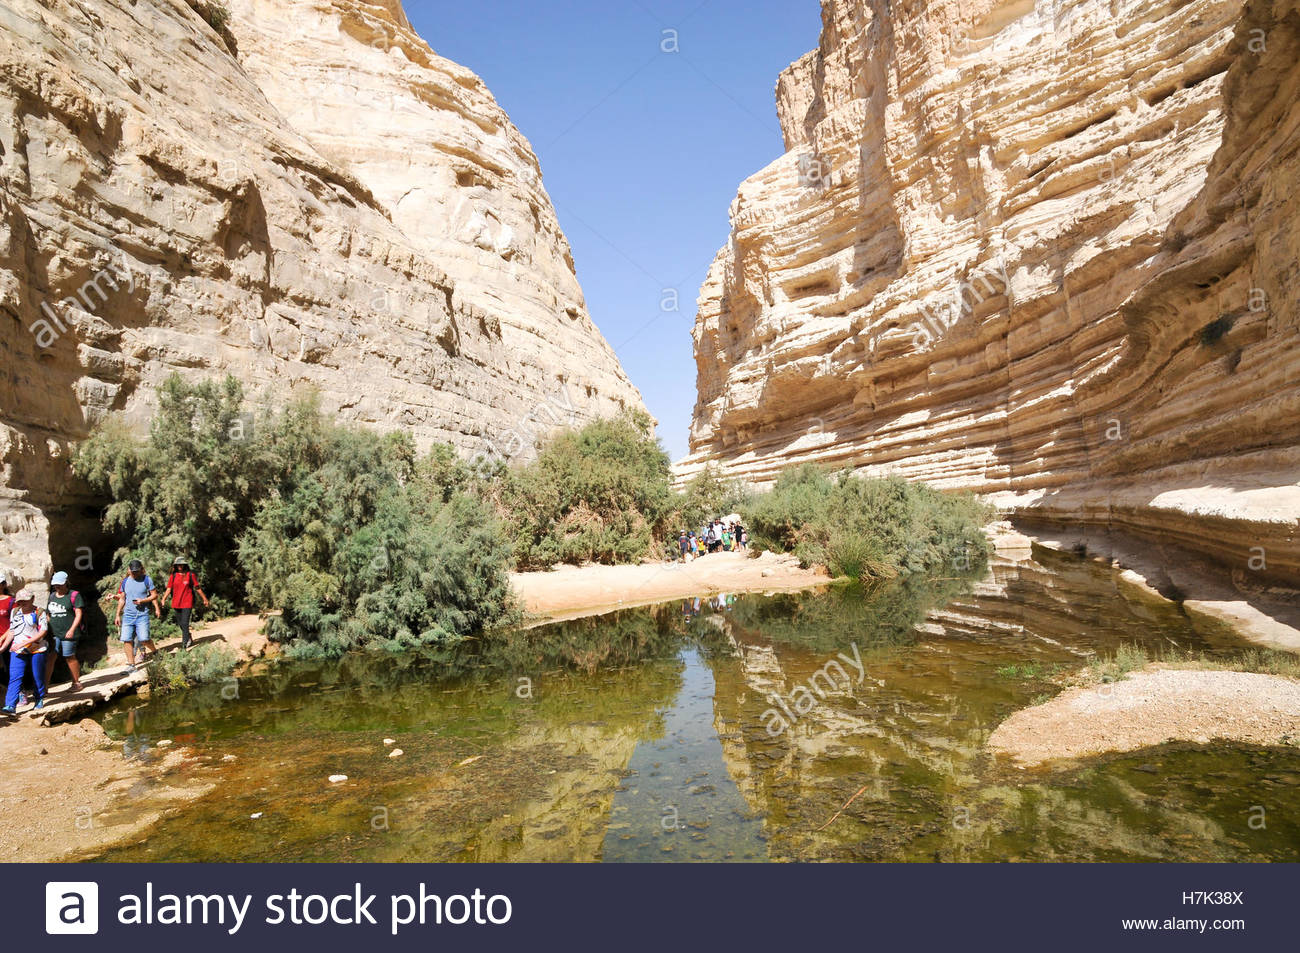 avdat national park